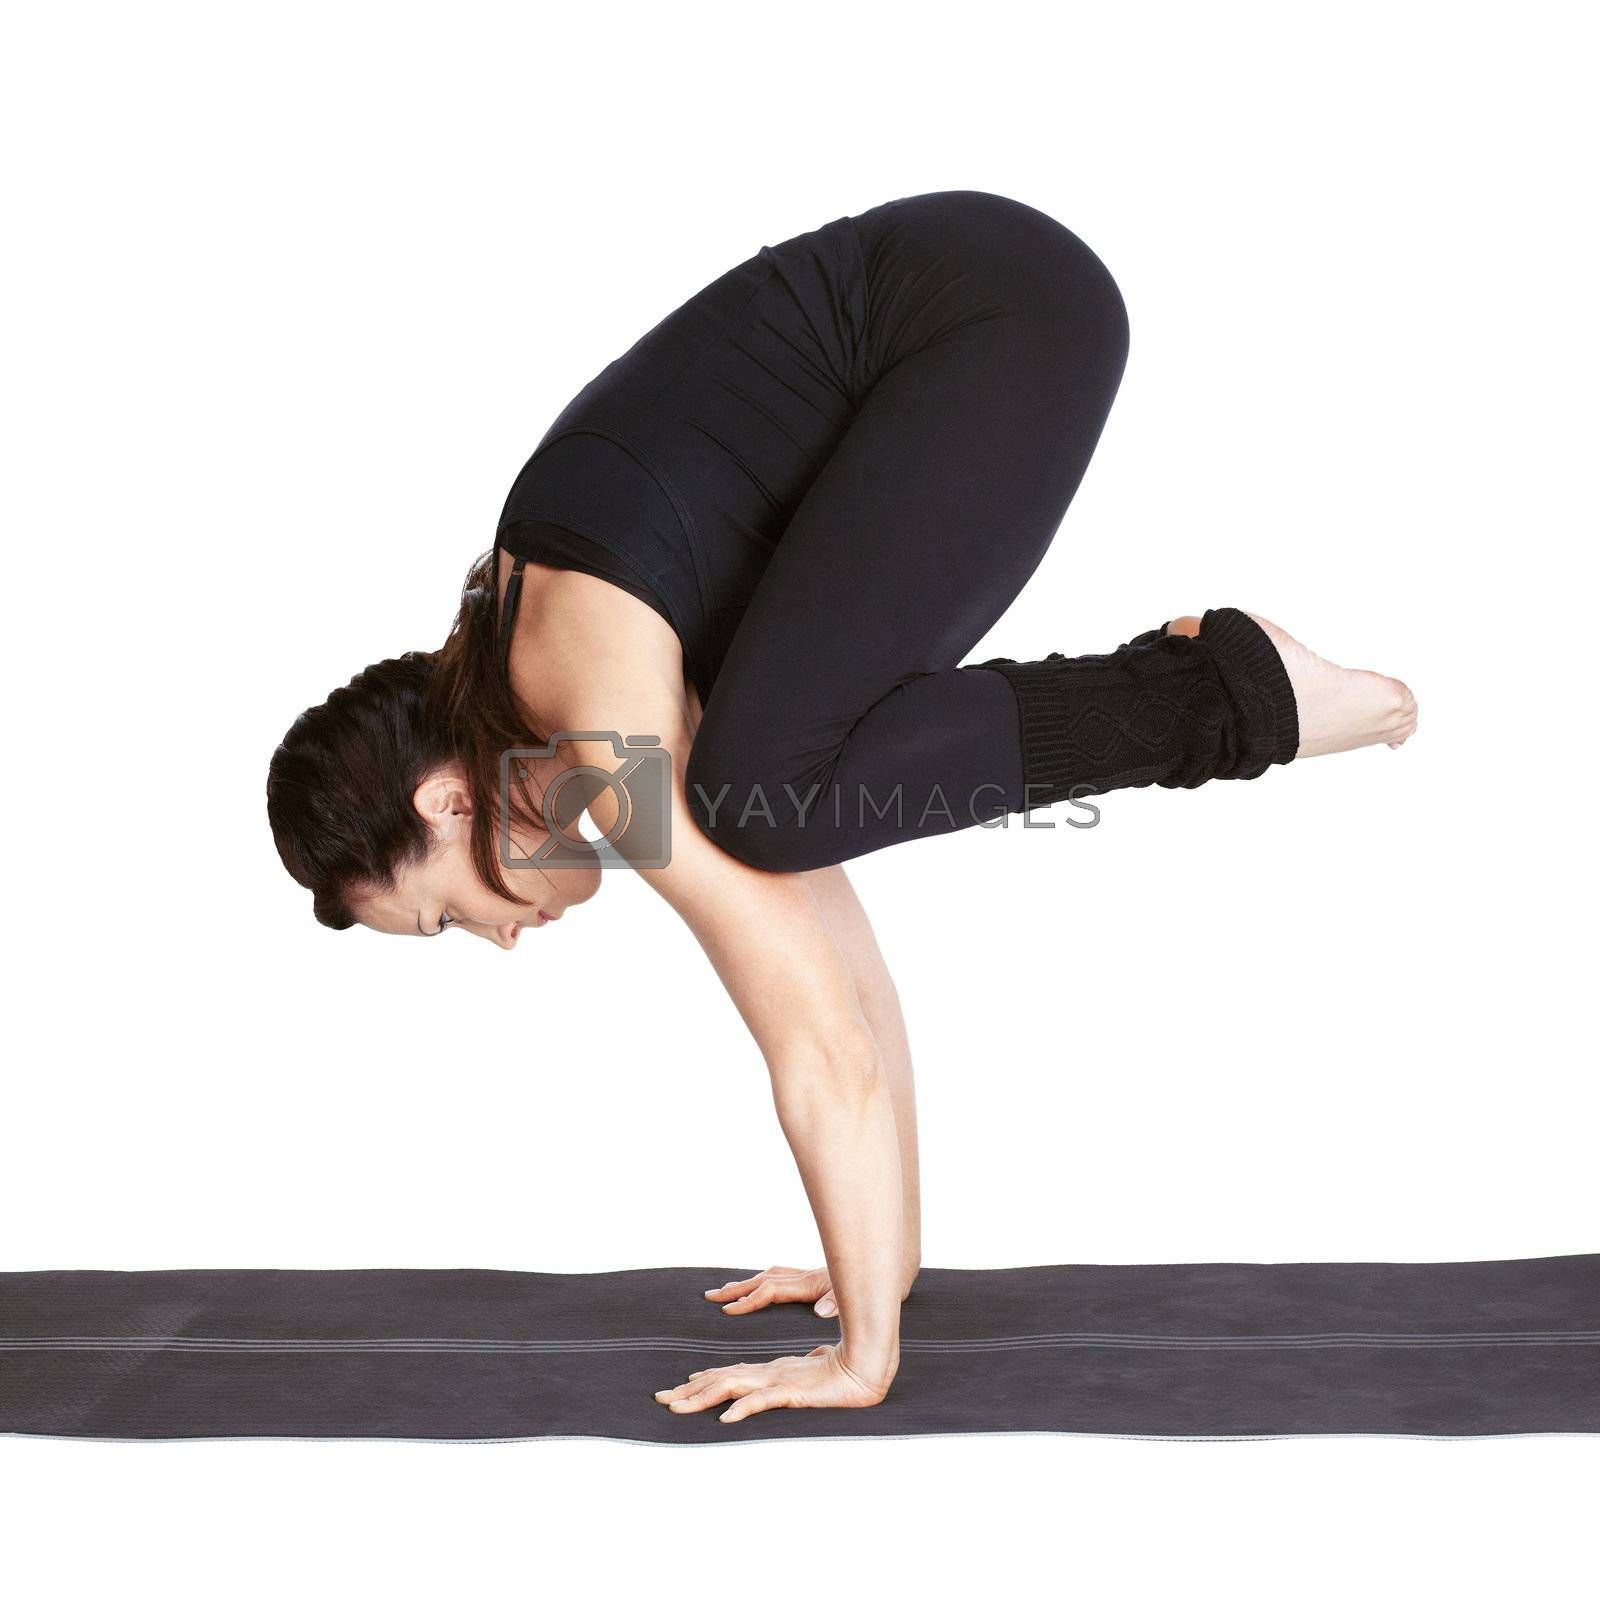 full-length portrait of beautiful woman working out yoga exercise bakasana (crane pose) on fitness mat